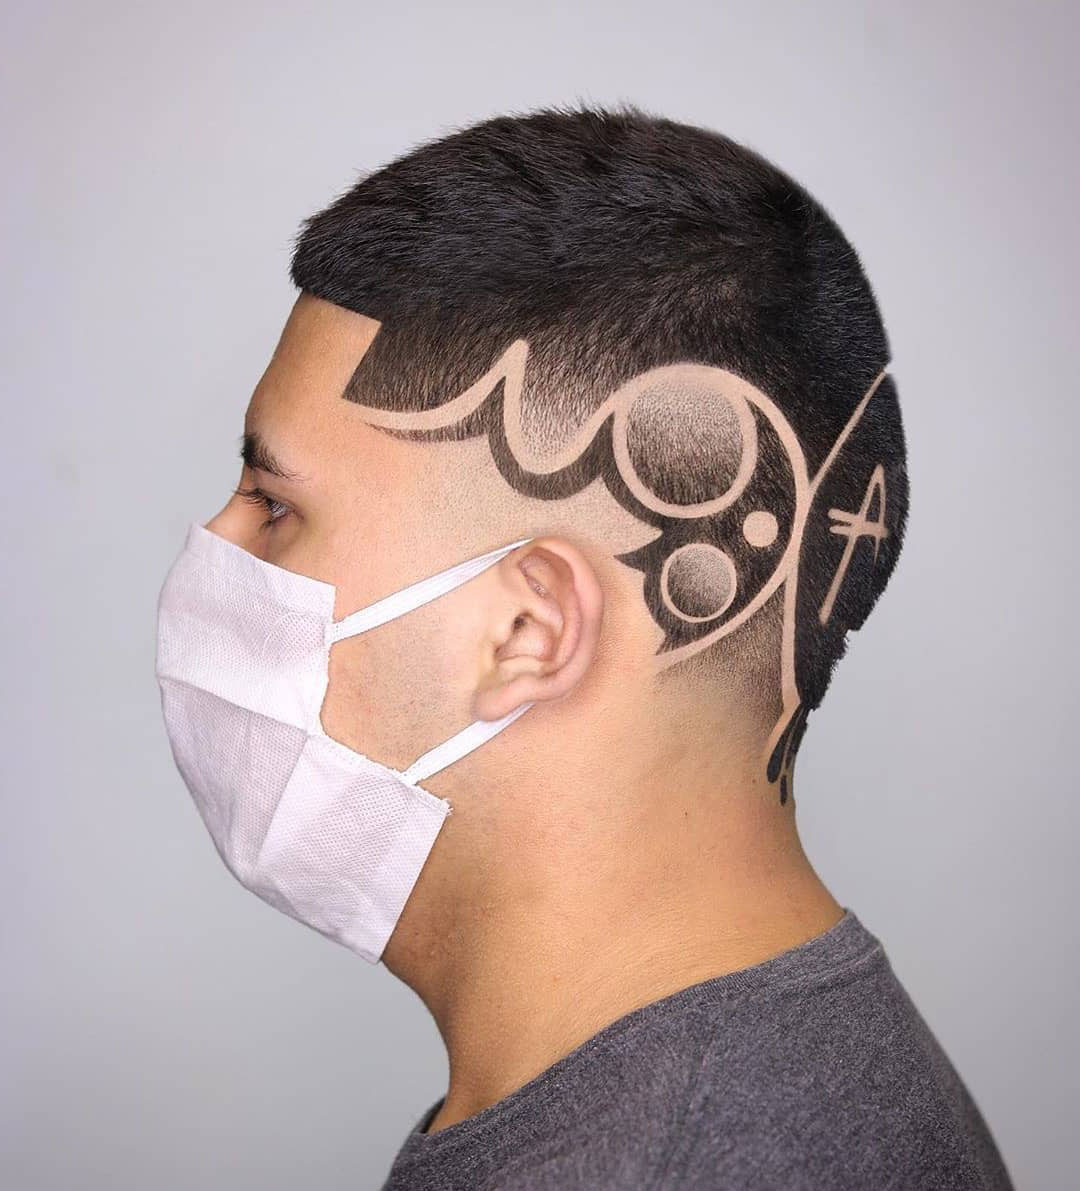 Hieroglyph Hairstyle for Men